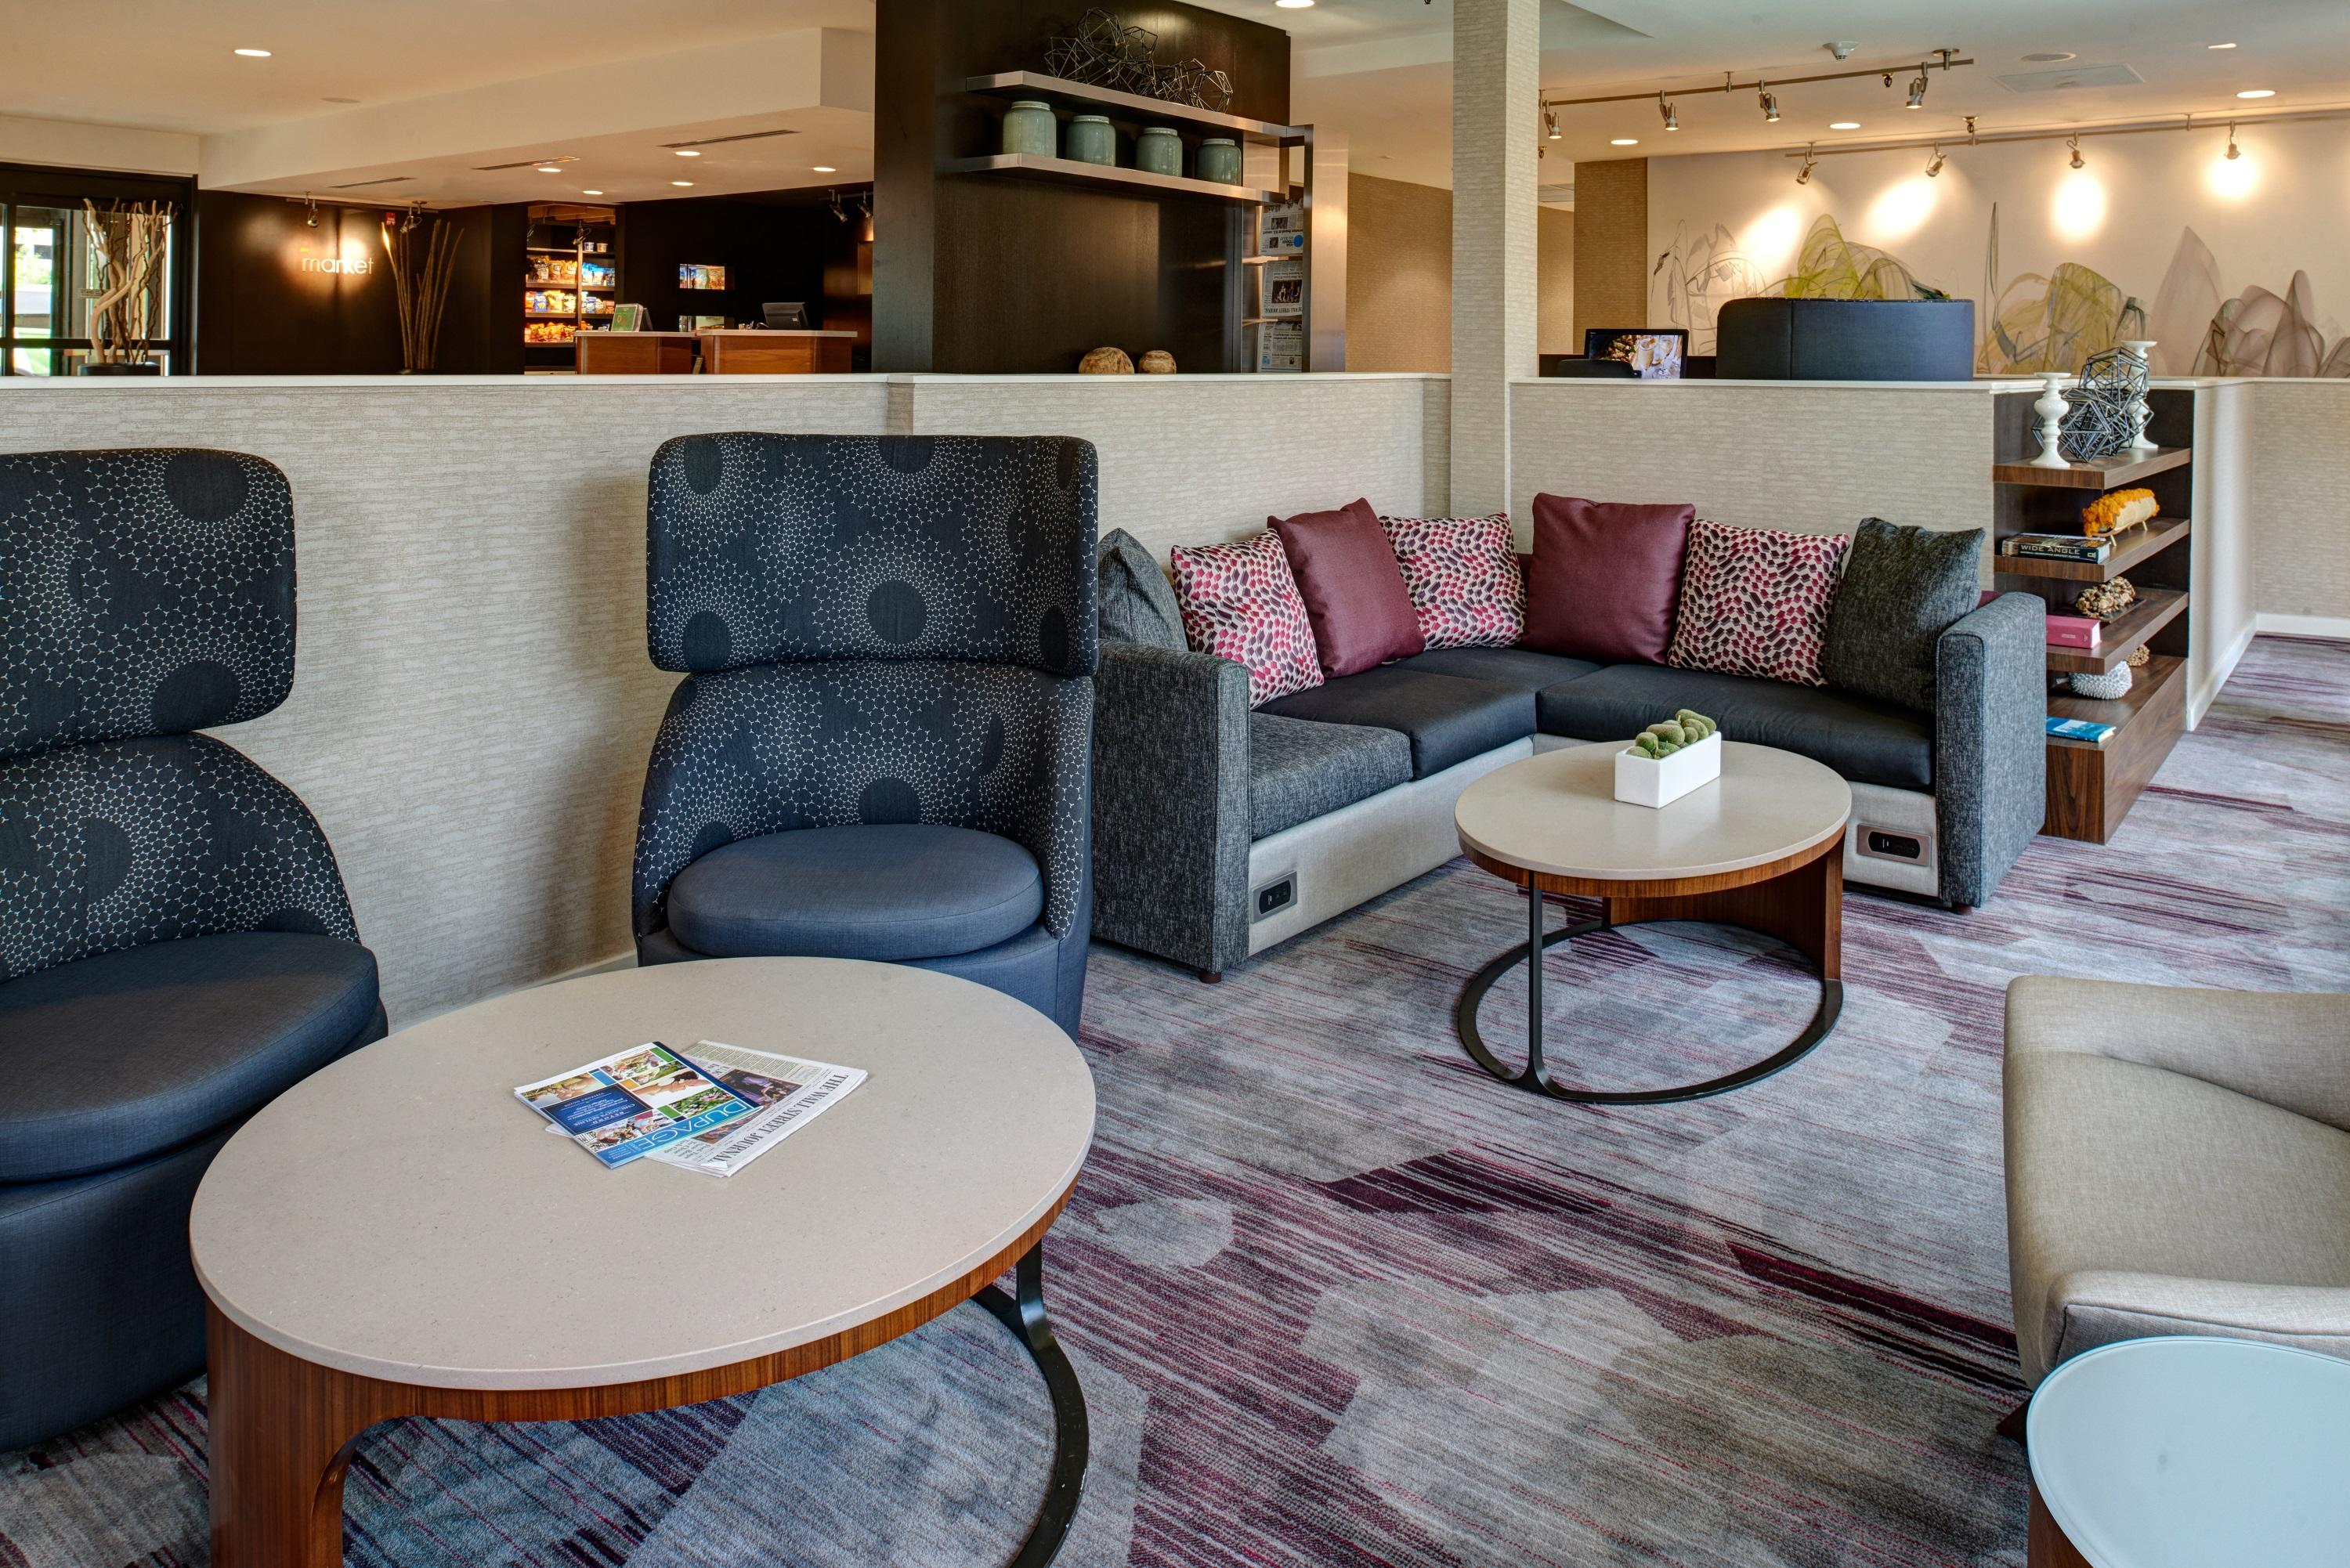 Courtyard by Marriott Chicago Oakbrook Terrace image 6